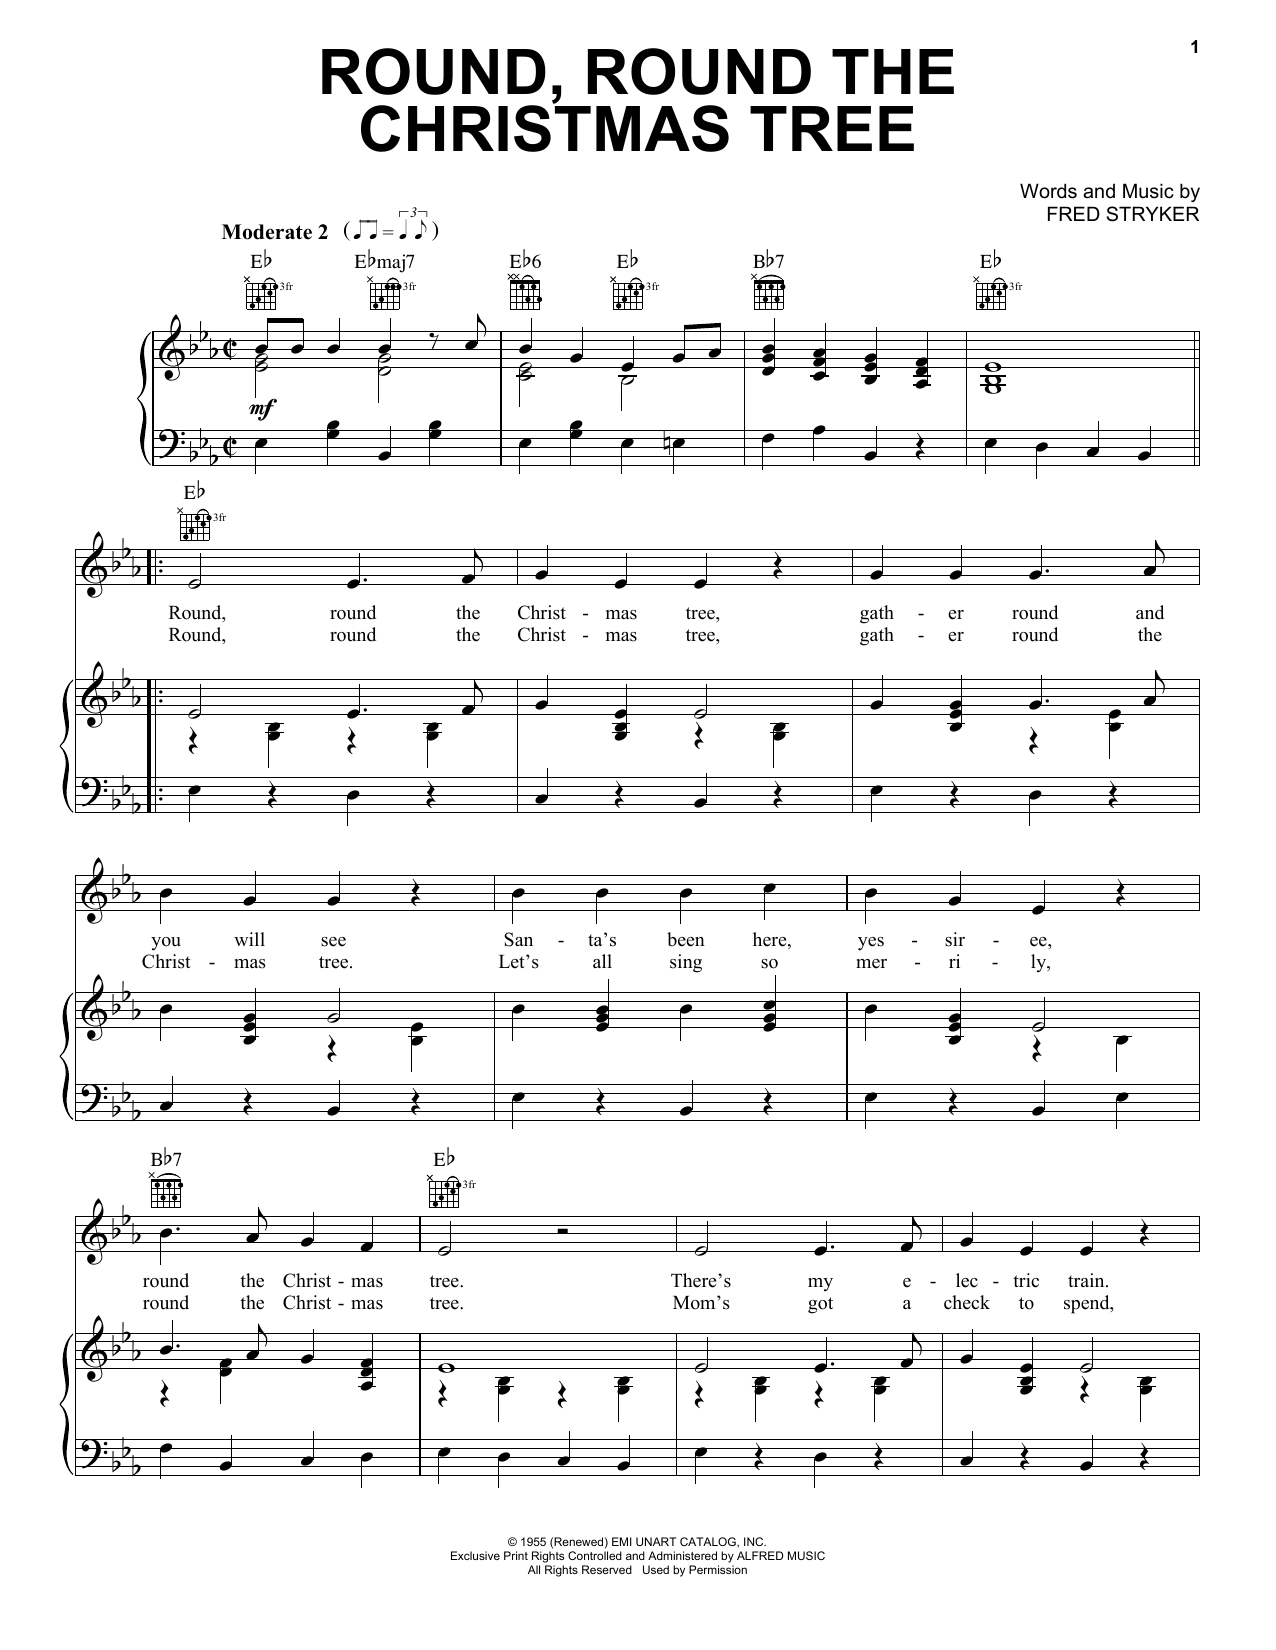 Gene Autry Round, Round The Christmas Tree sheet music notes and chords. Download Printable PDF.